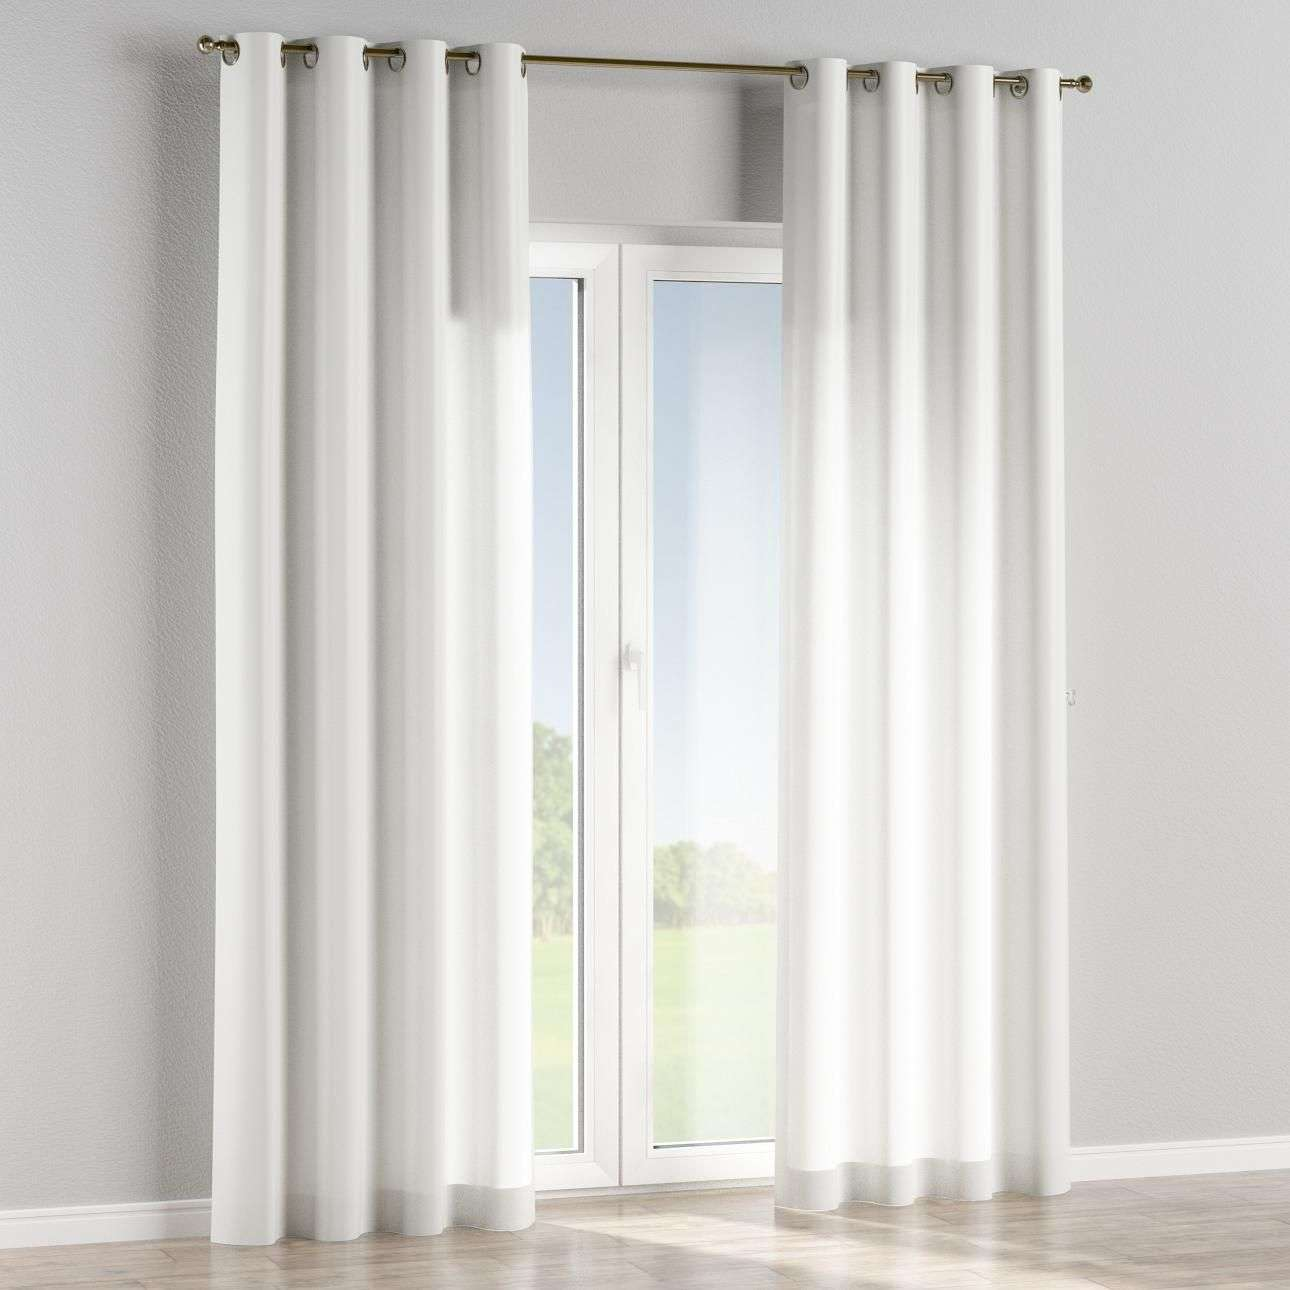 Eyelet curtains in collection Venice, fabric: 140-53